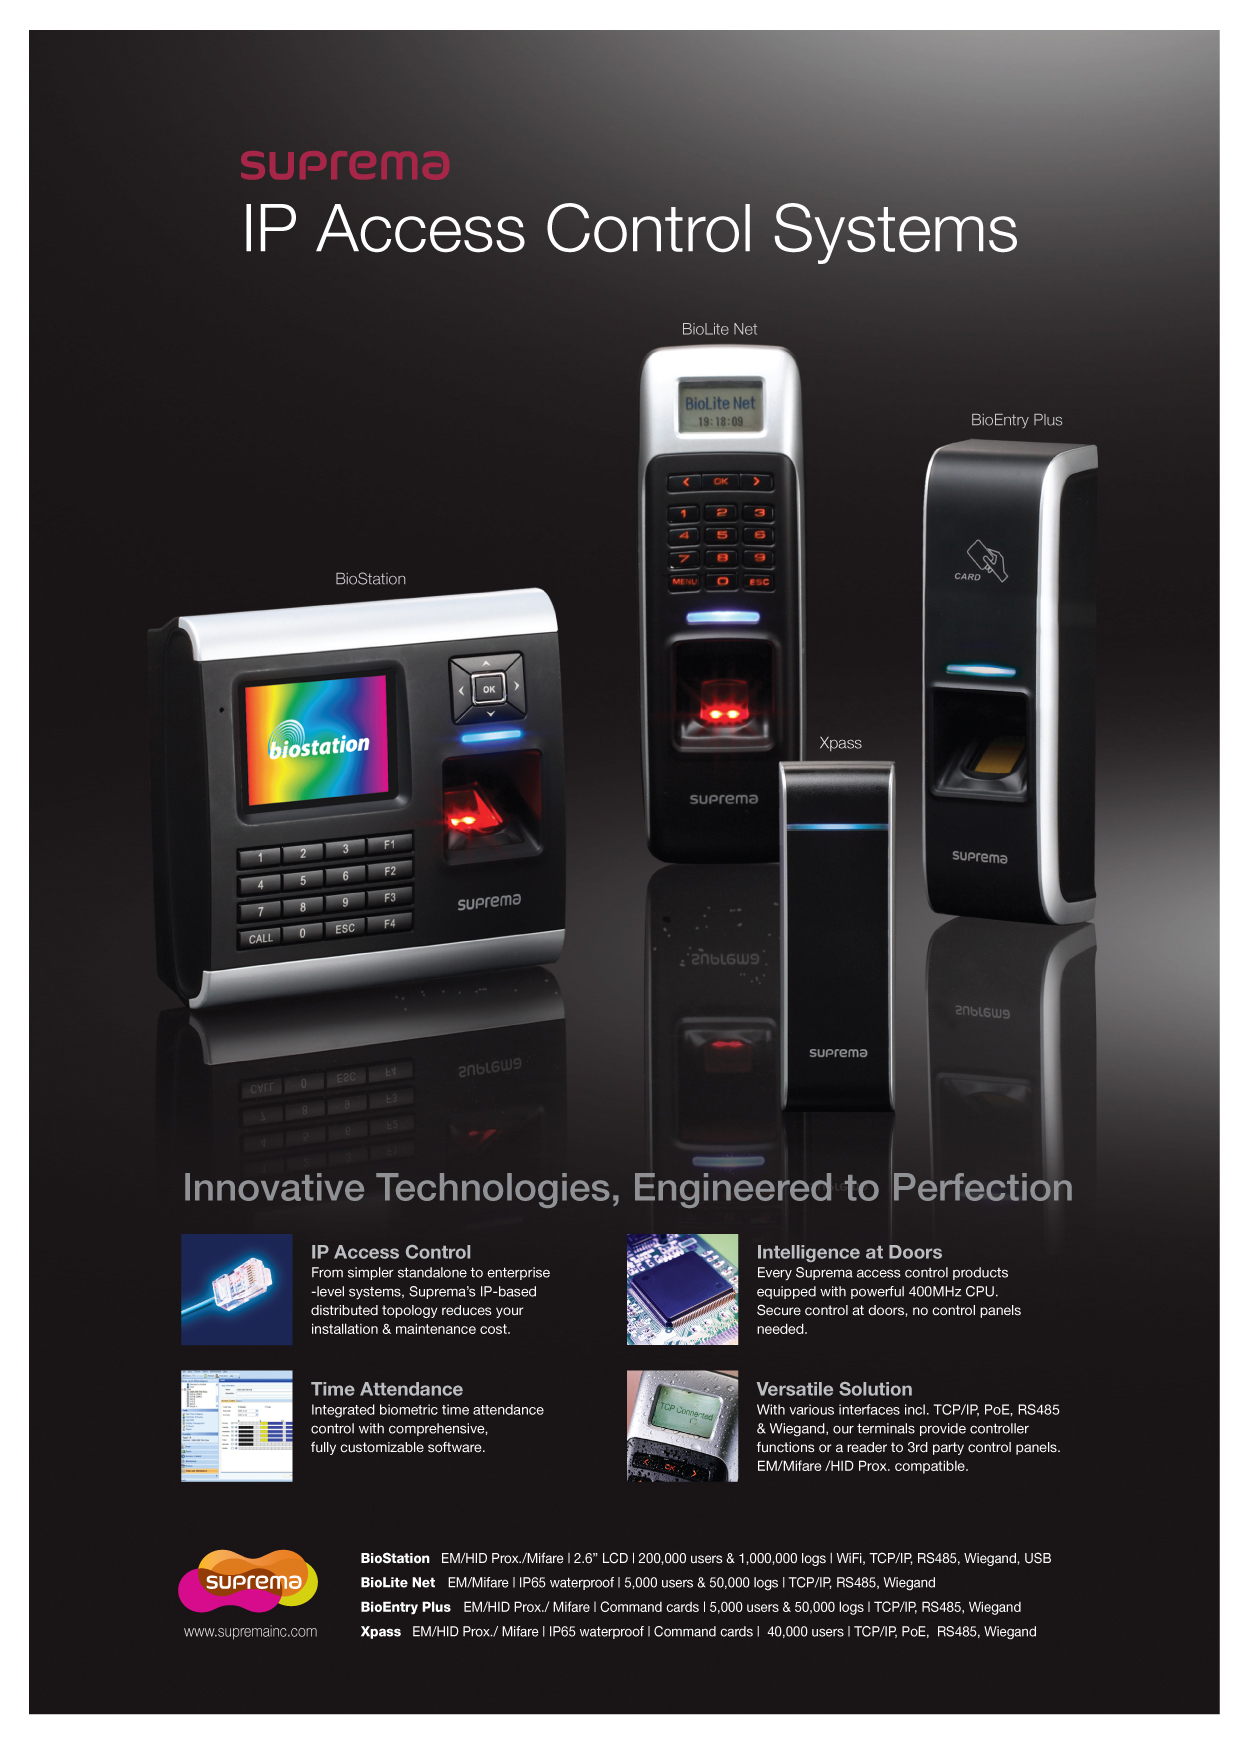 _eng_images_support_brochure_IP Access Control_Print Ad_Apr 2010